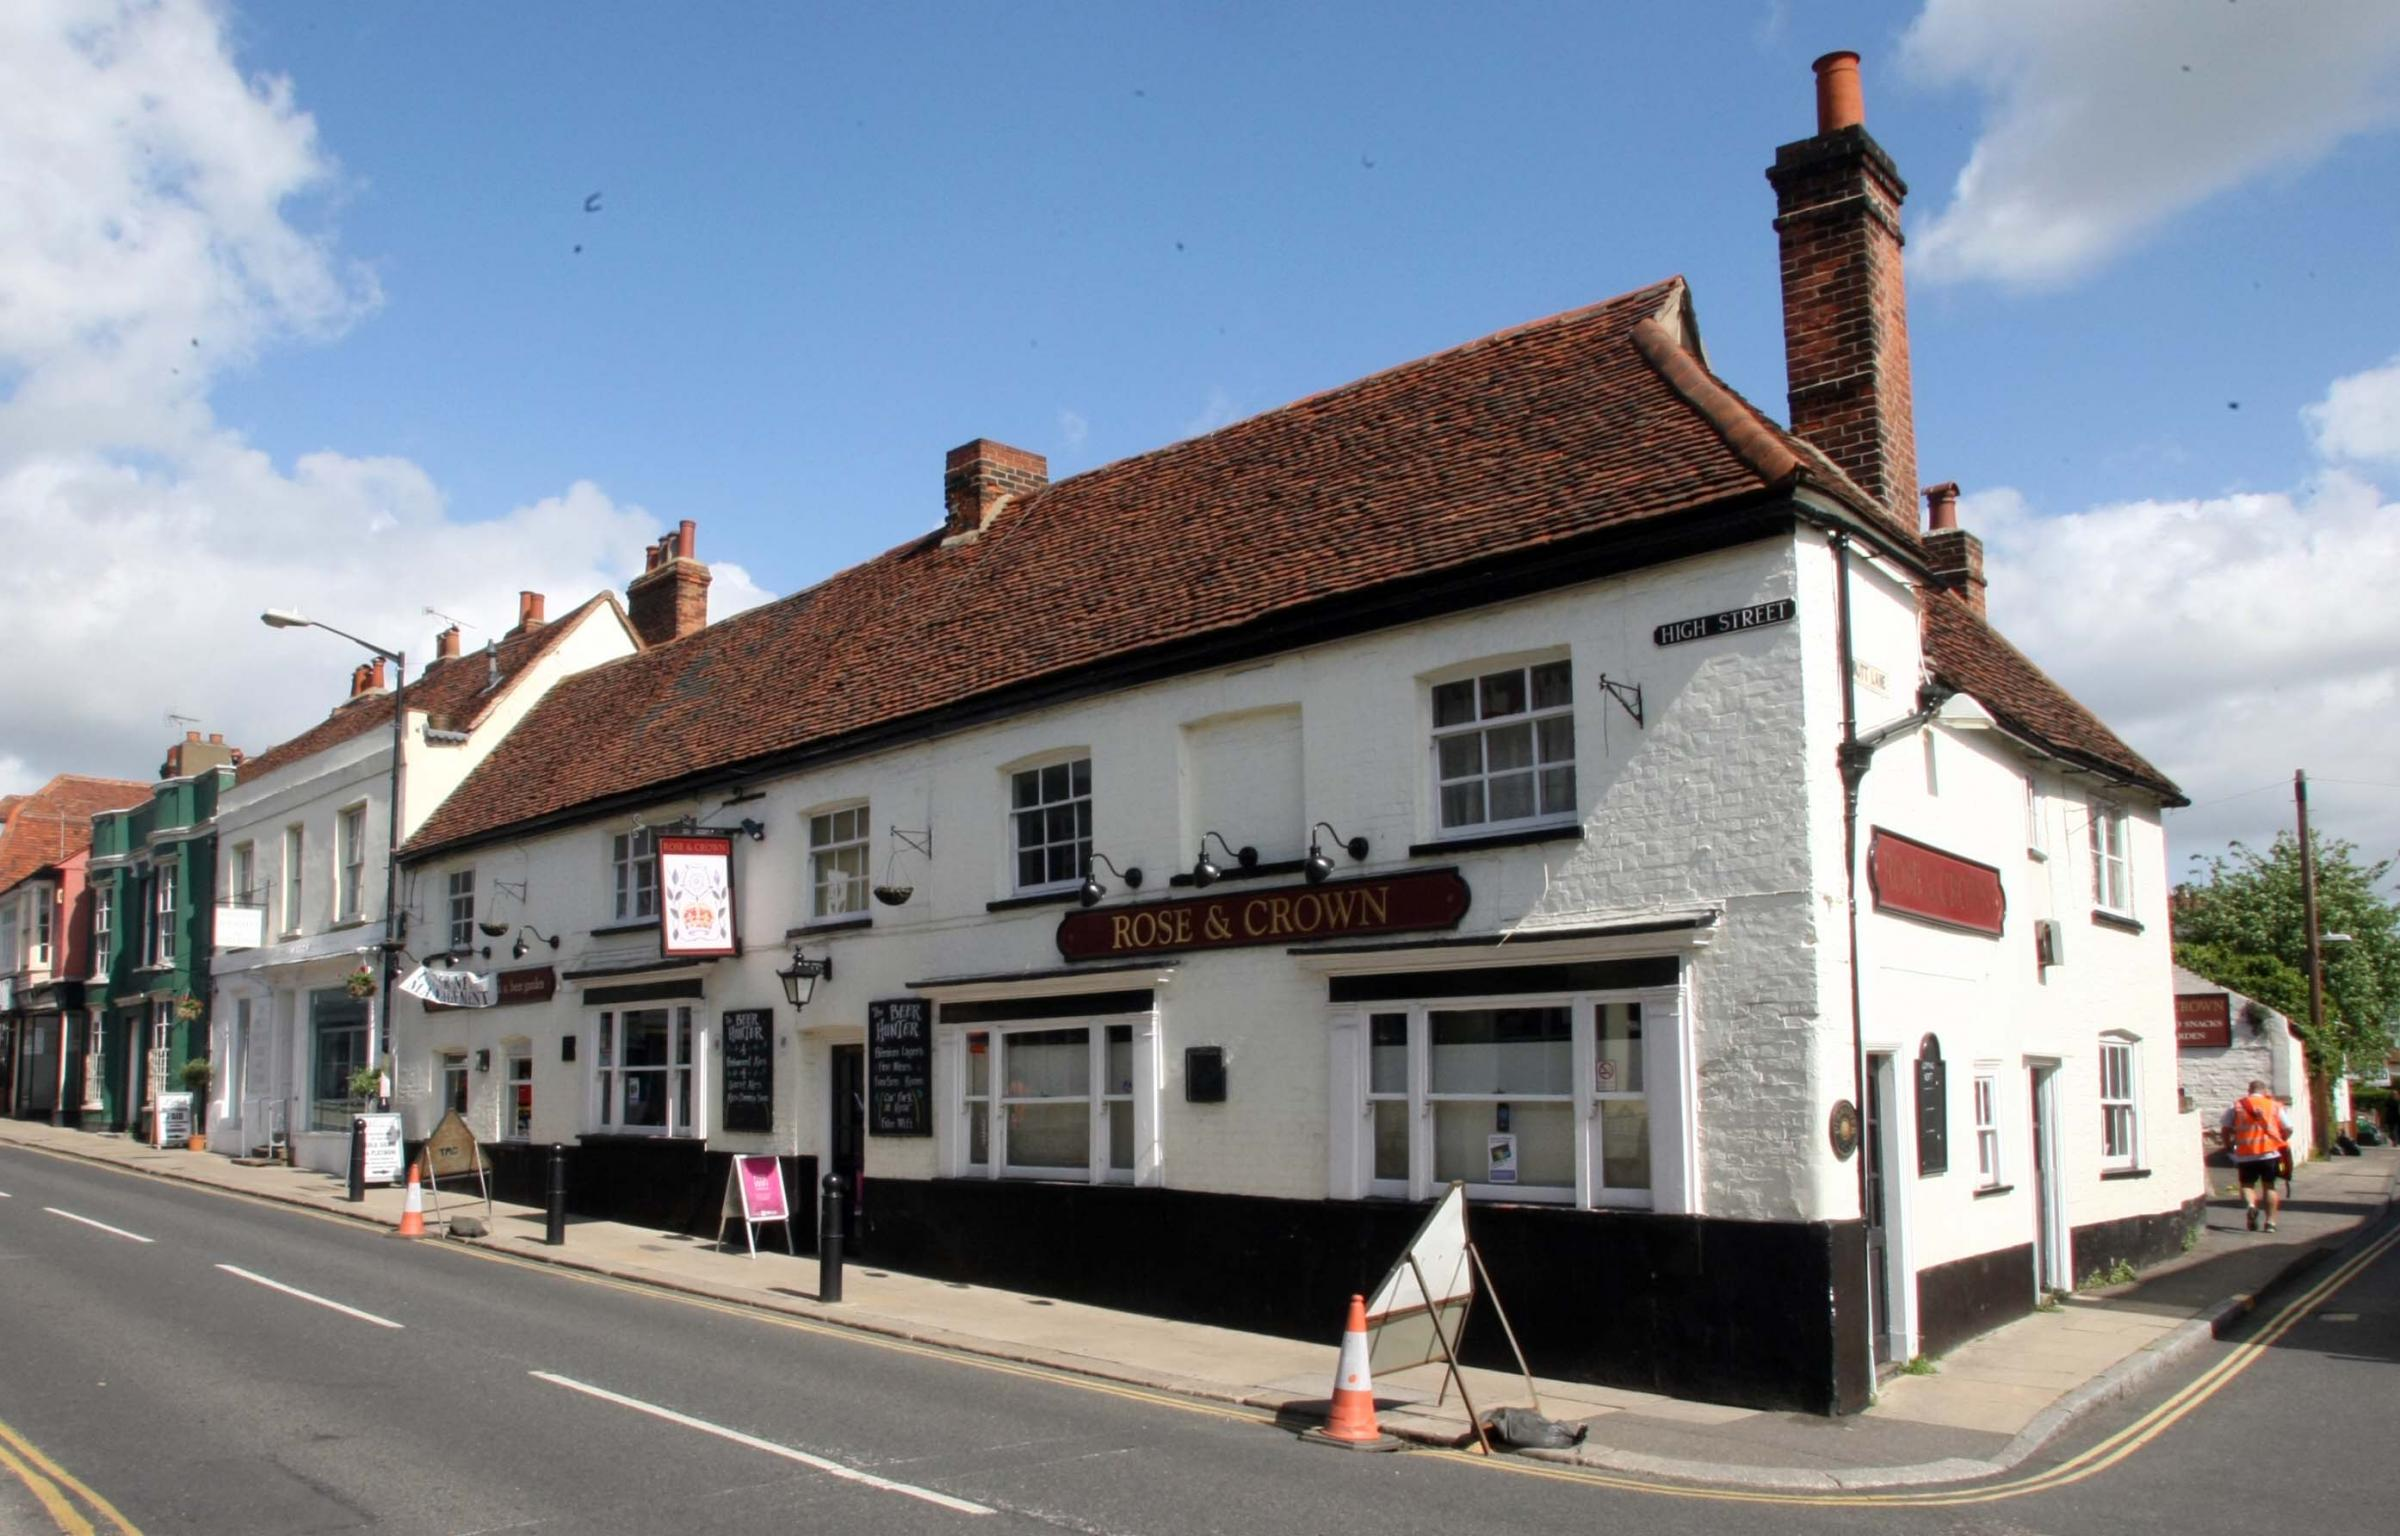 Rose and Crown pub in Maldon